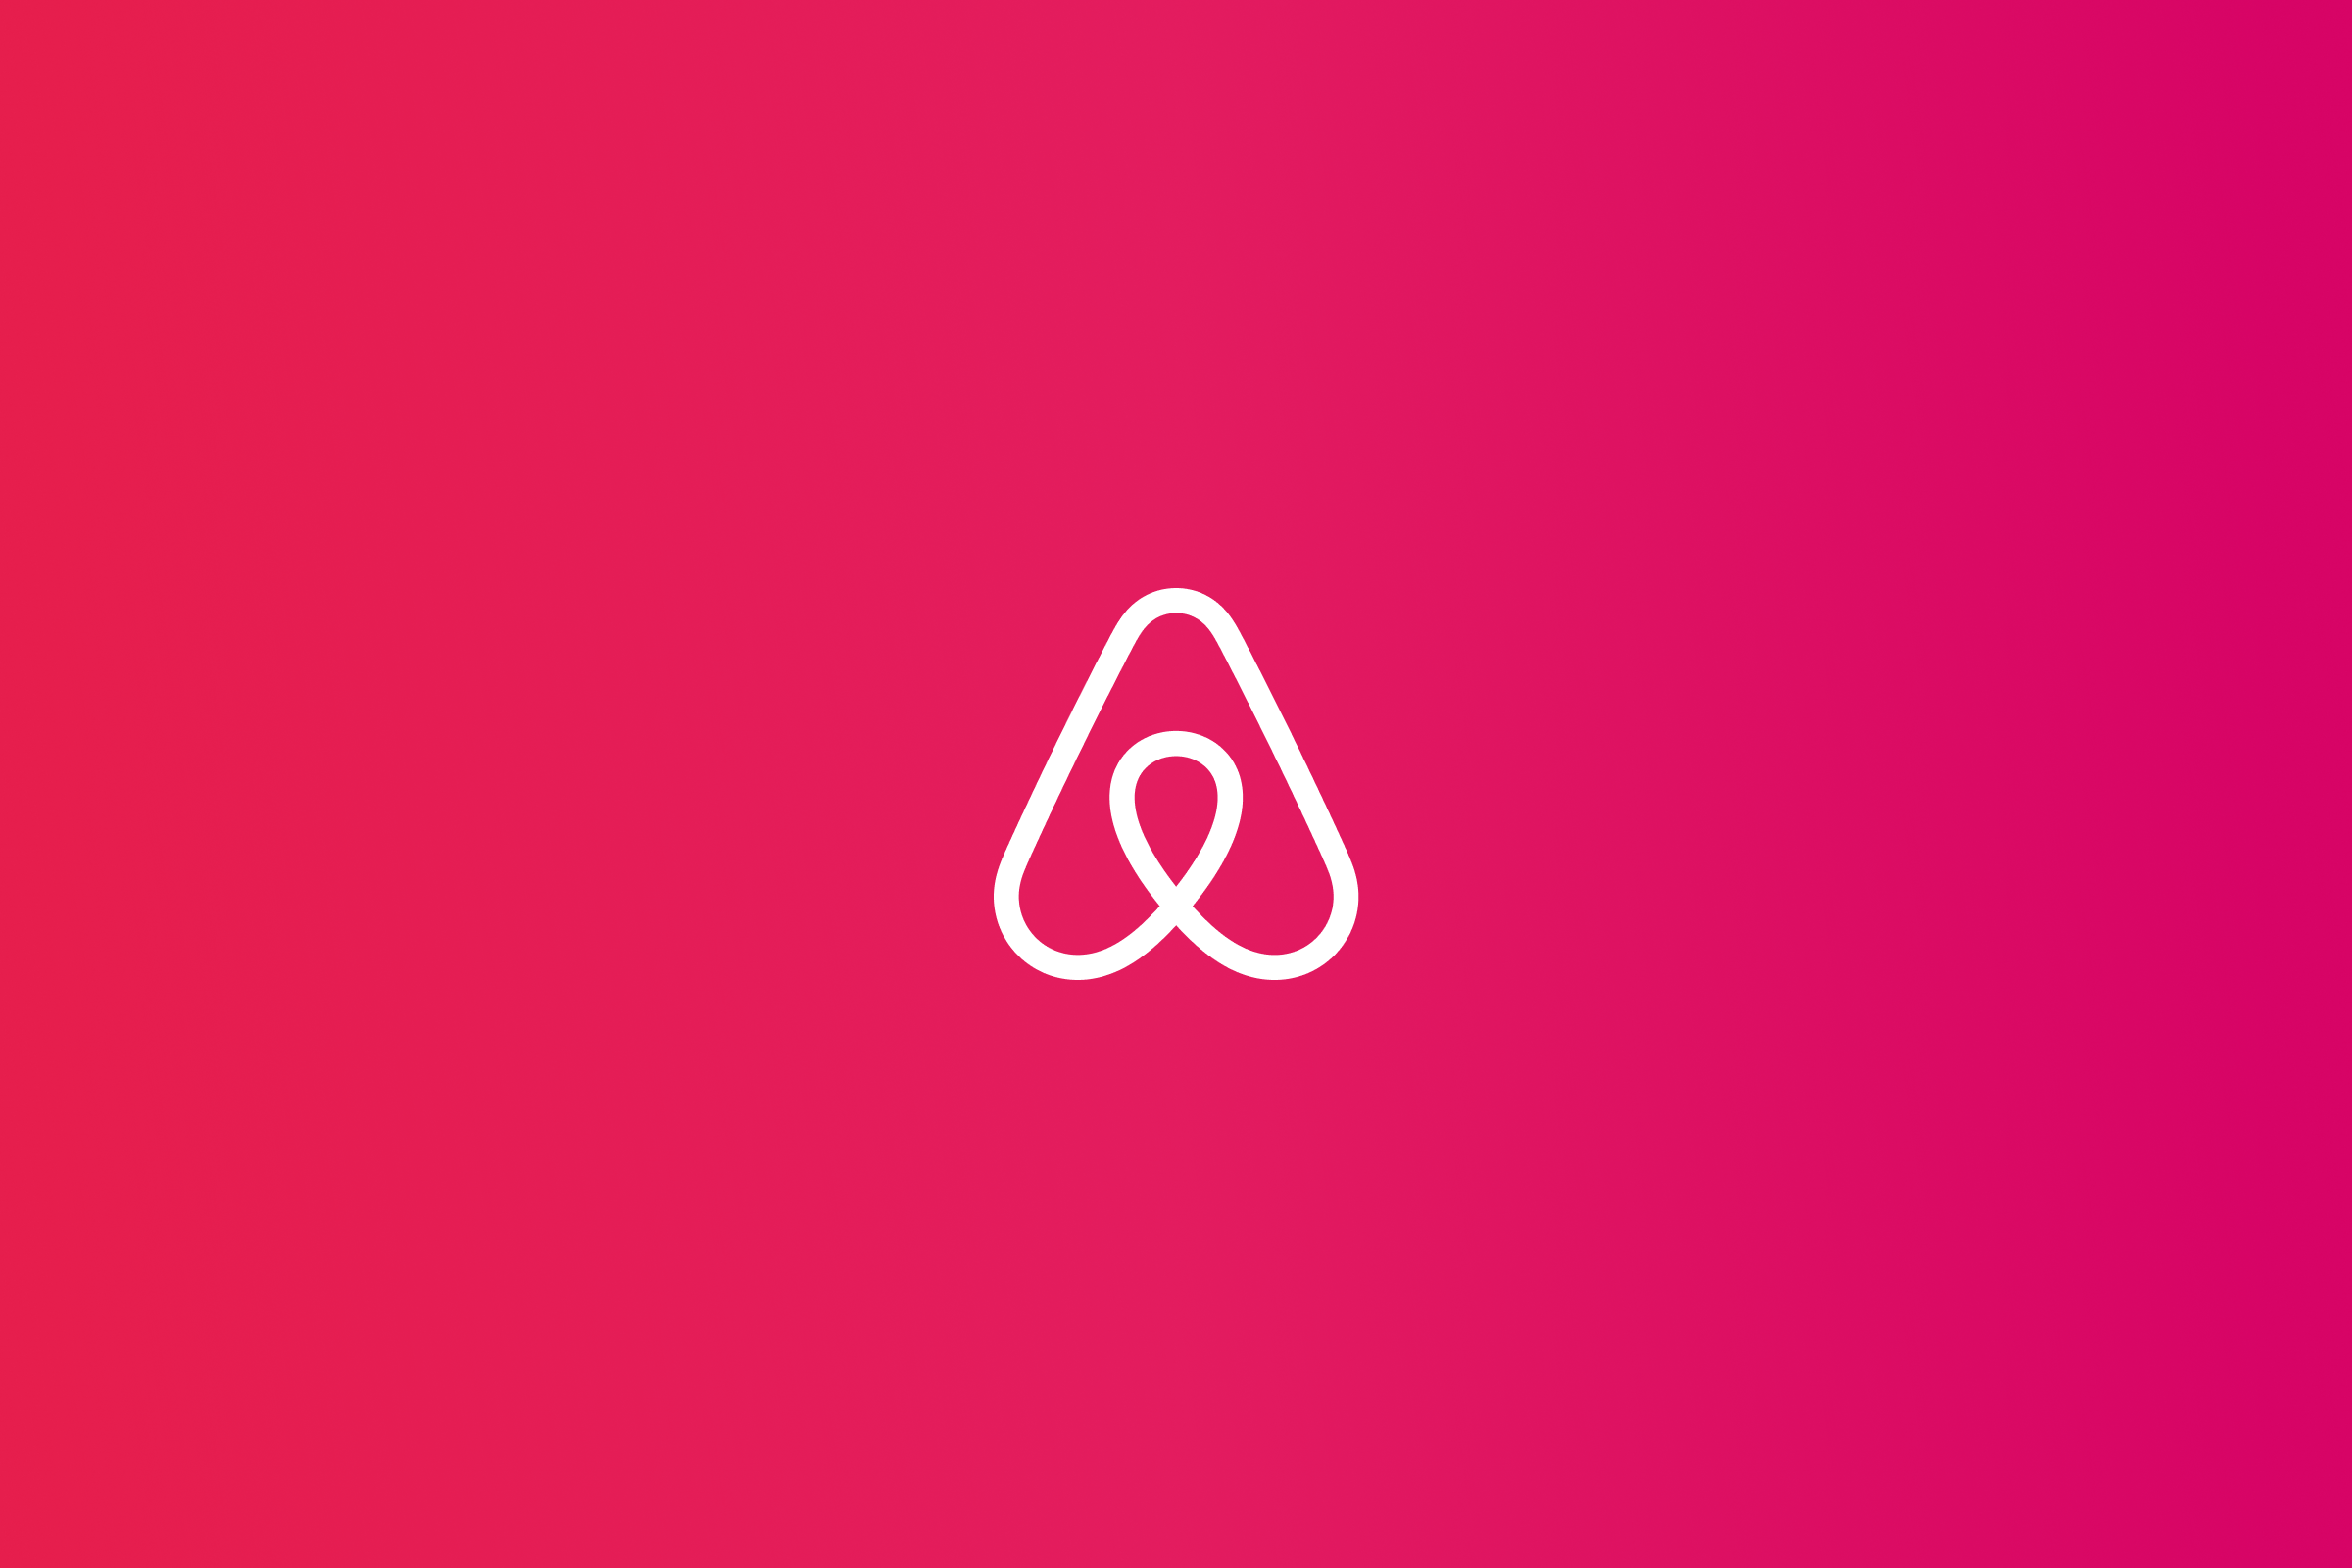 Airbnb logo placed on deep pink gradient colored background